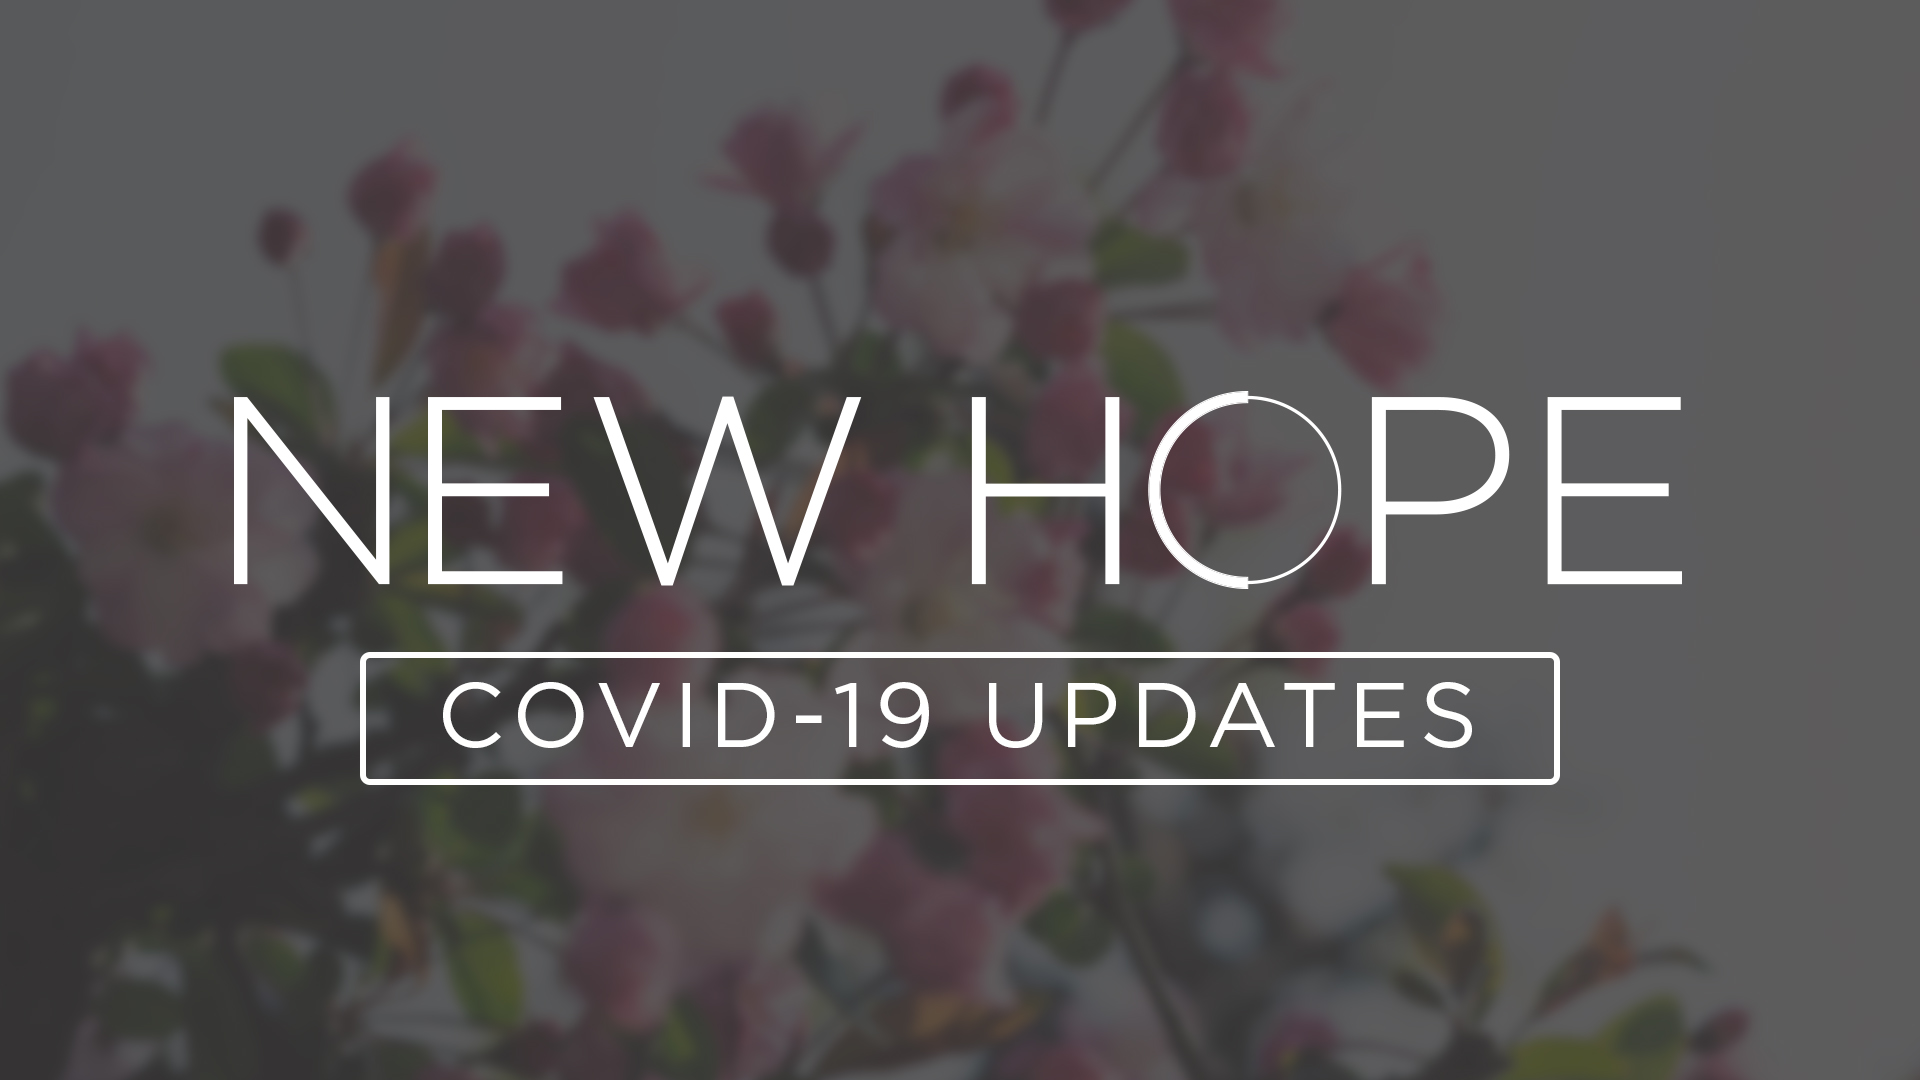 New Hope's Update on COVID-19